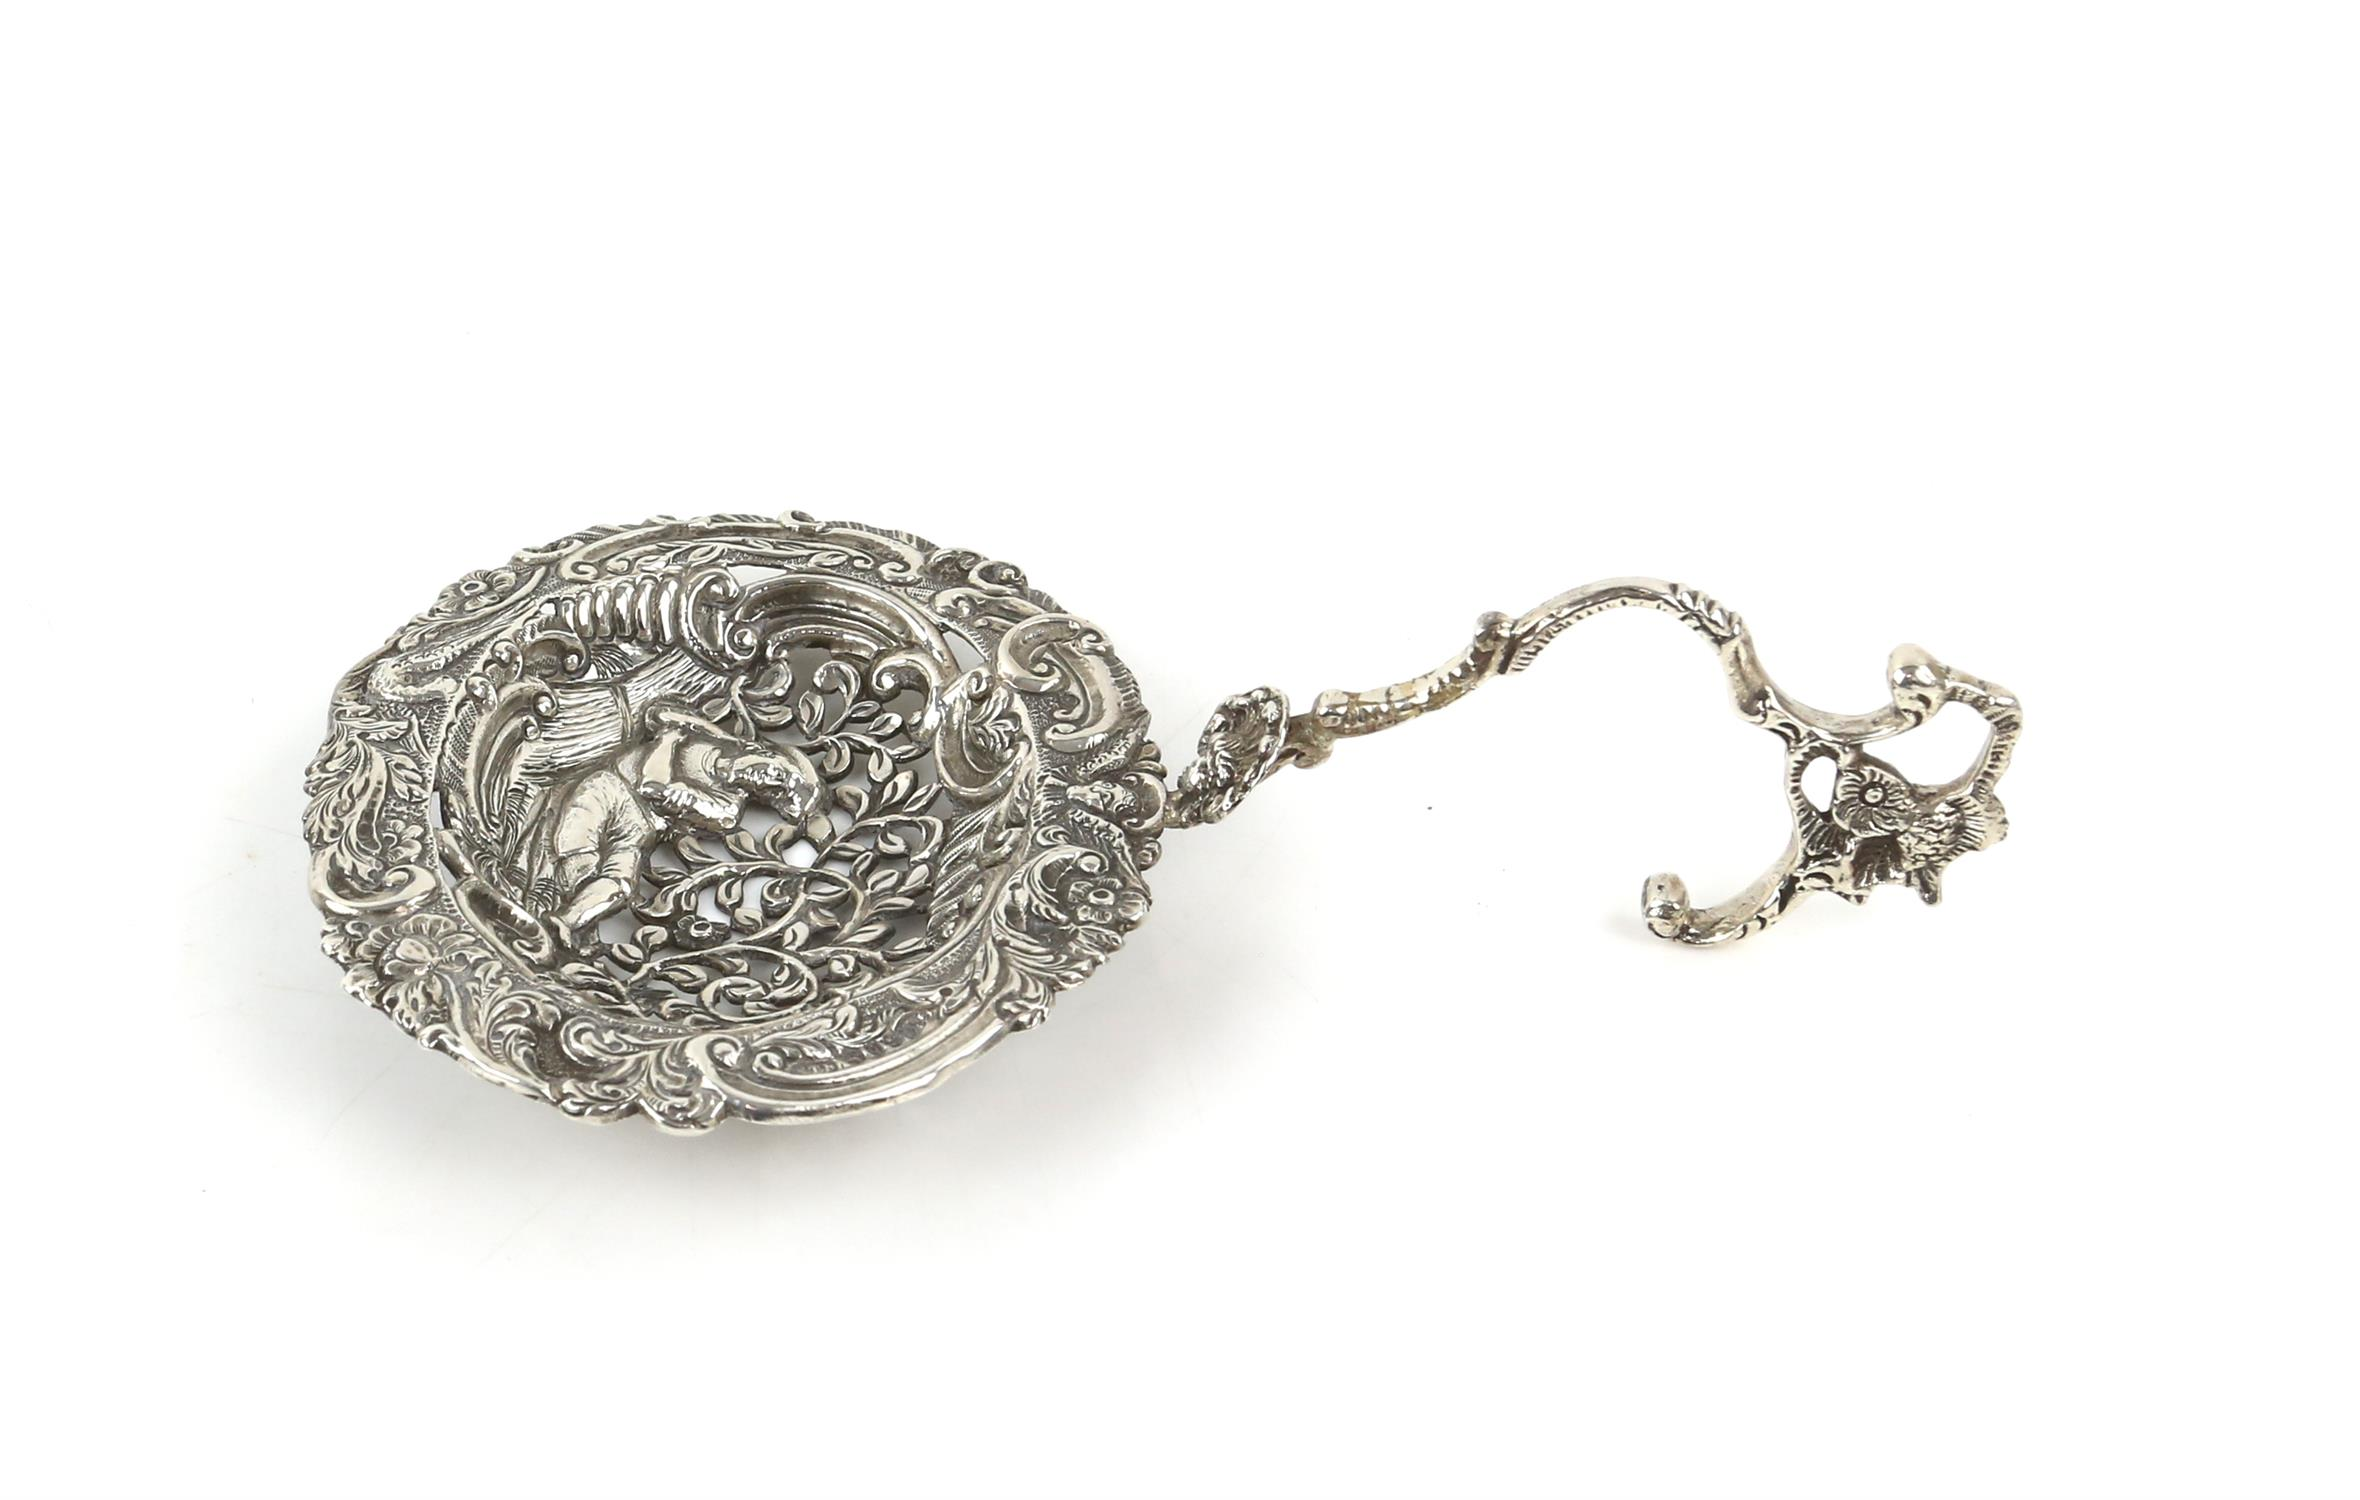 Large Continental silver bon bon sifter spoon with a man surrounded by foliage, import marks ETB - Image 2 of 5